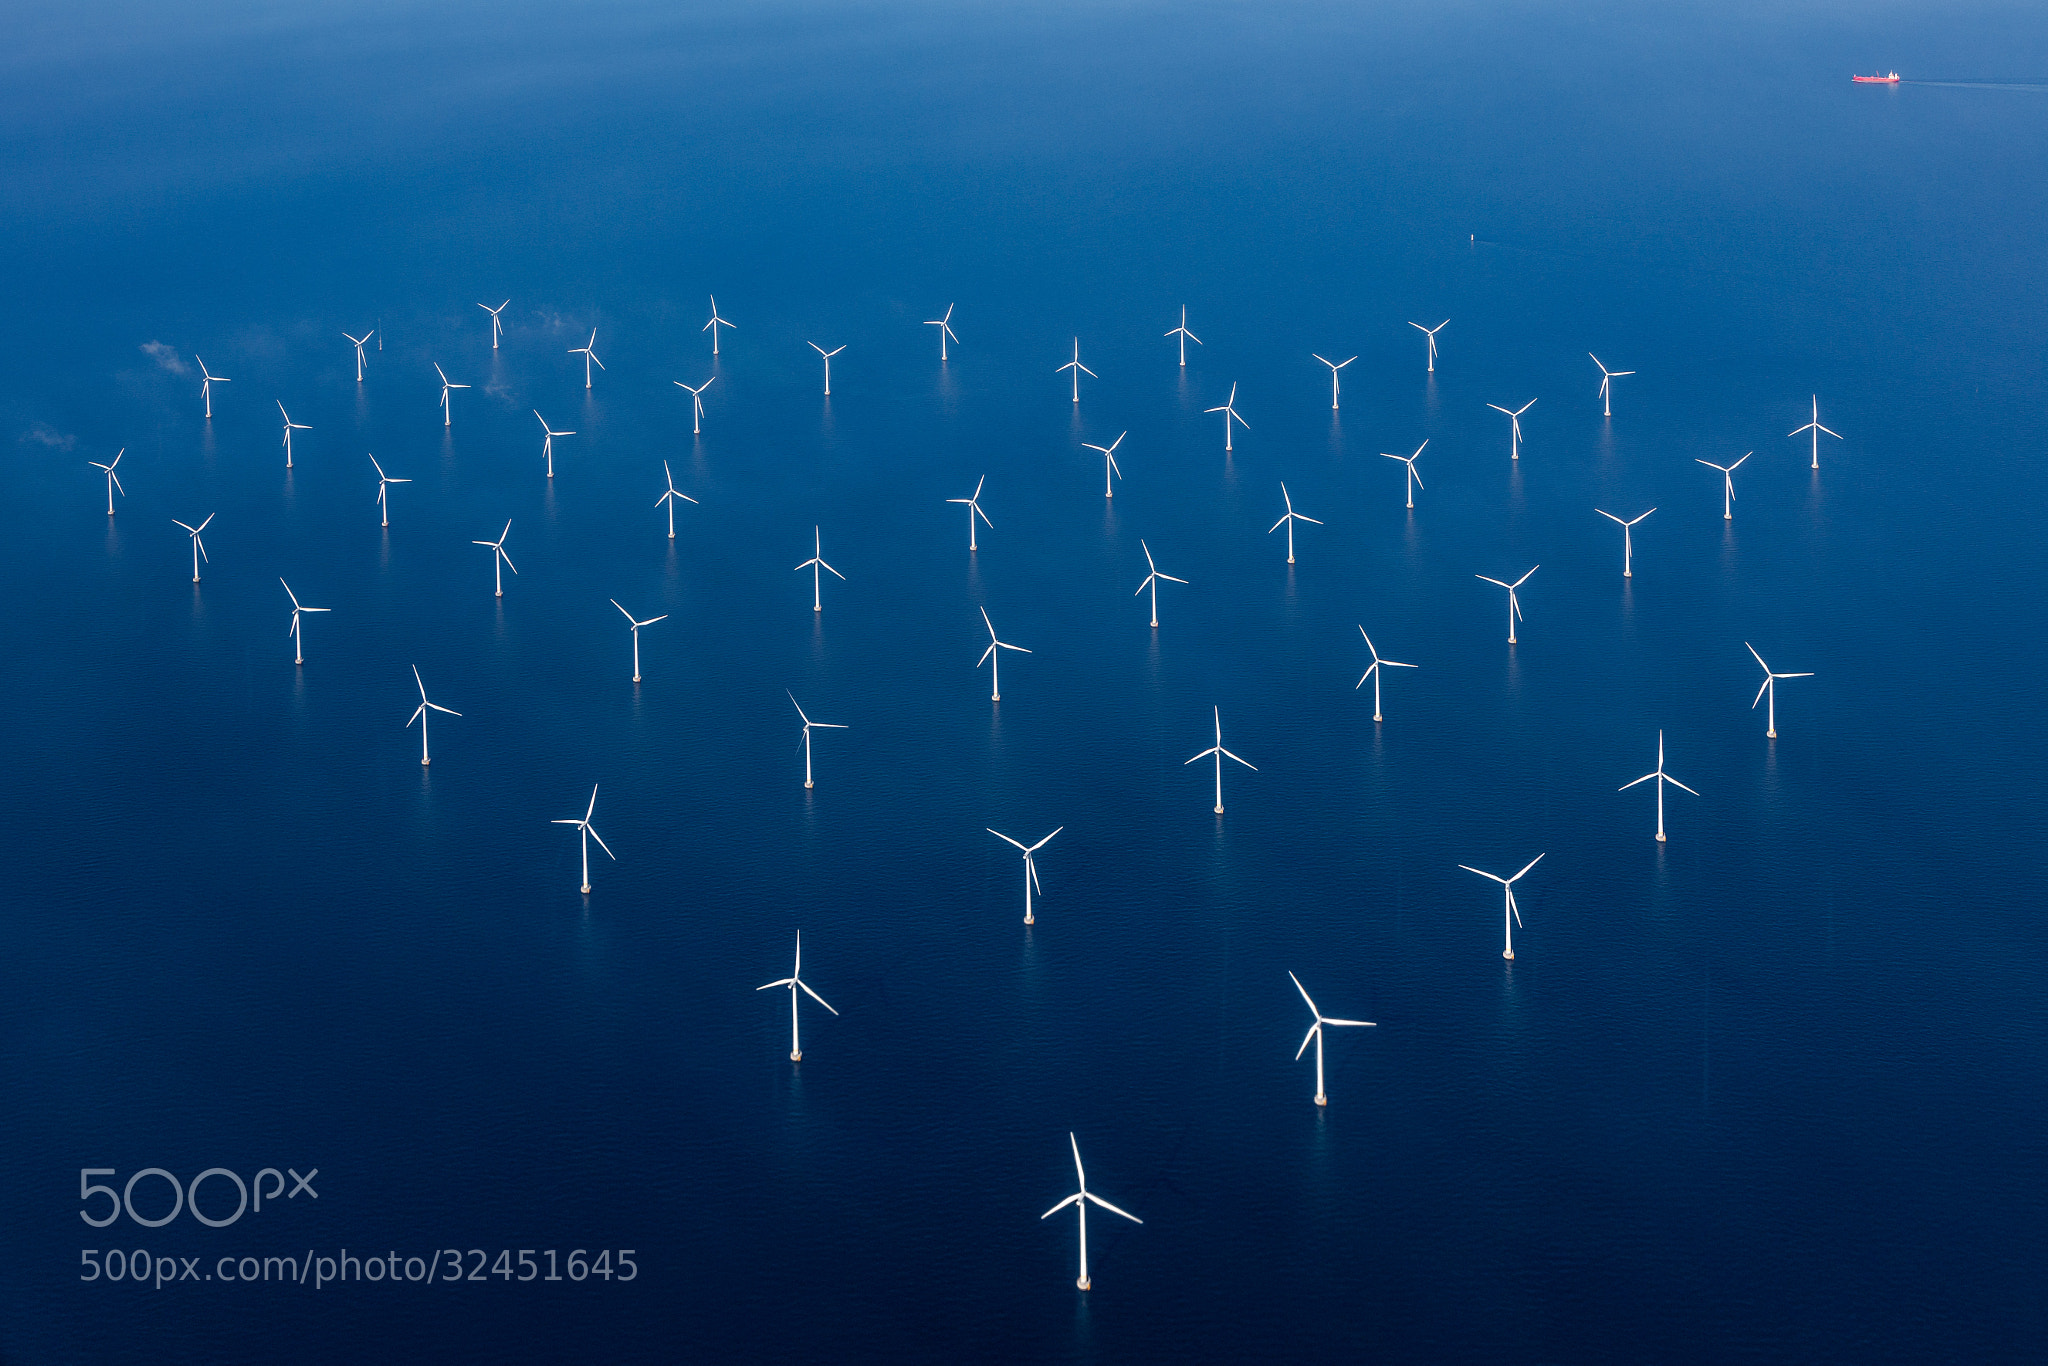 Photograph Windmills of the sea by Steen Rasmussen on 500px